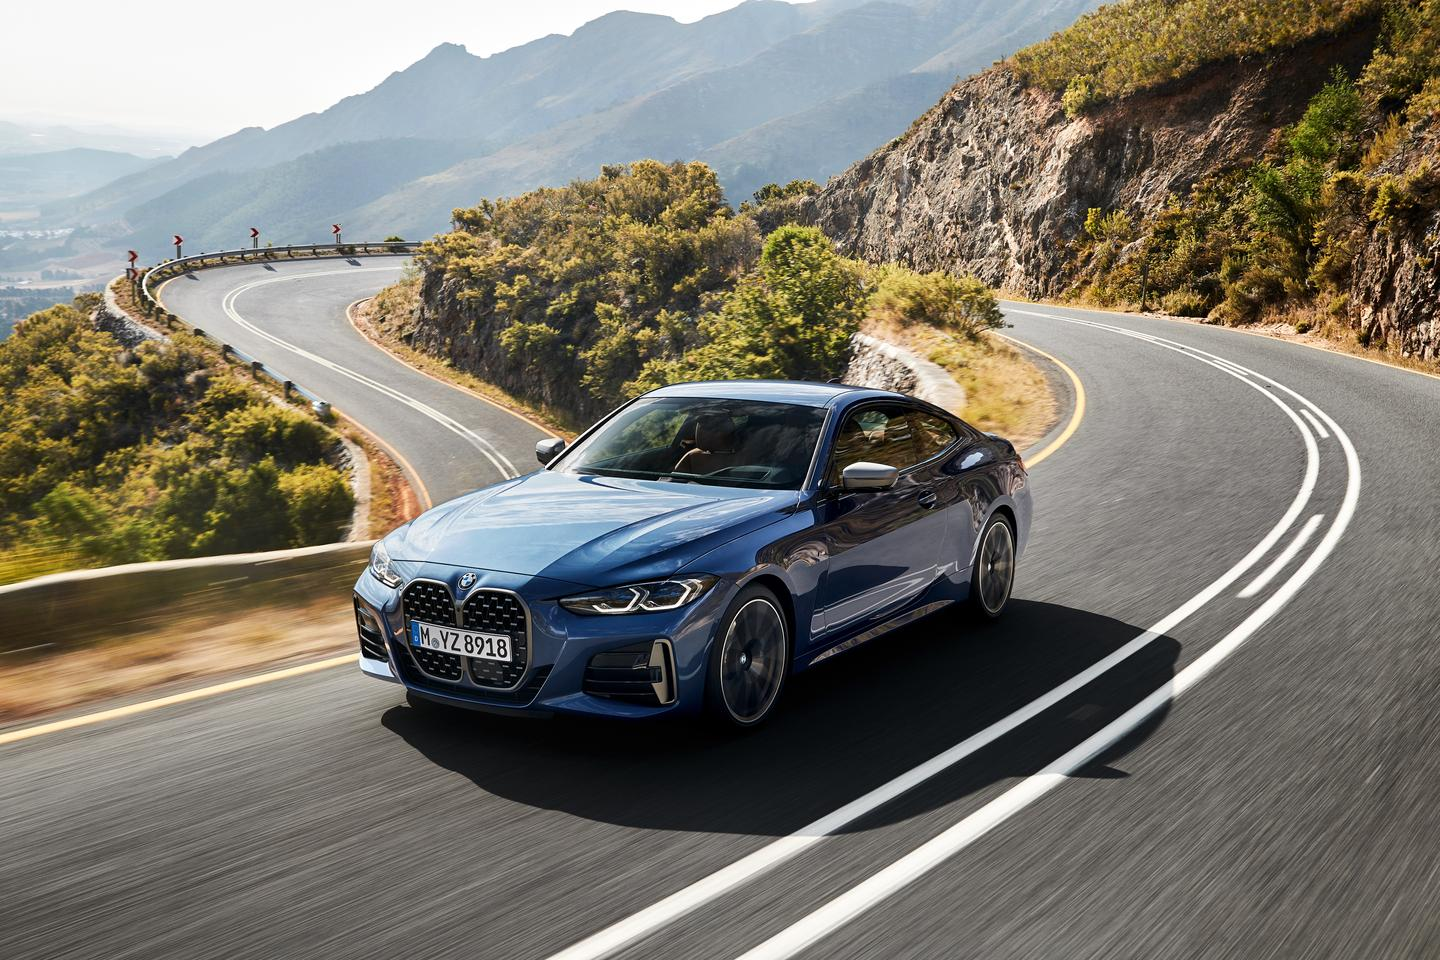 Stunning launch shots show the new BMW 4-series tackling a gorgeous set of coastal mountain twisties. We'd love to know where this road is!